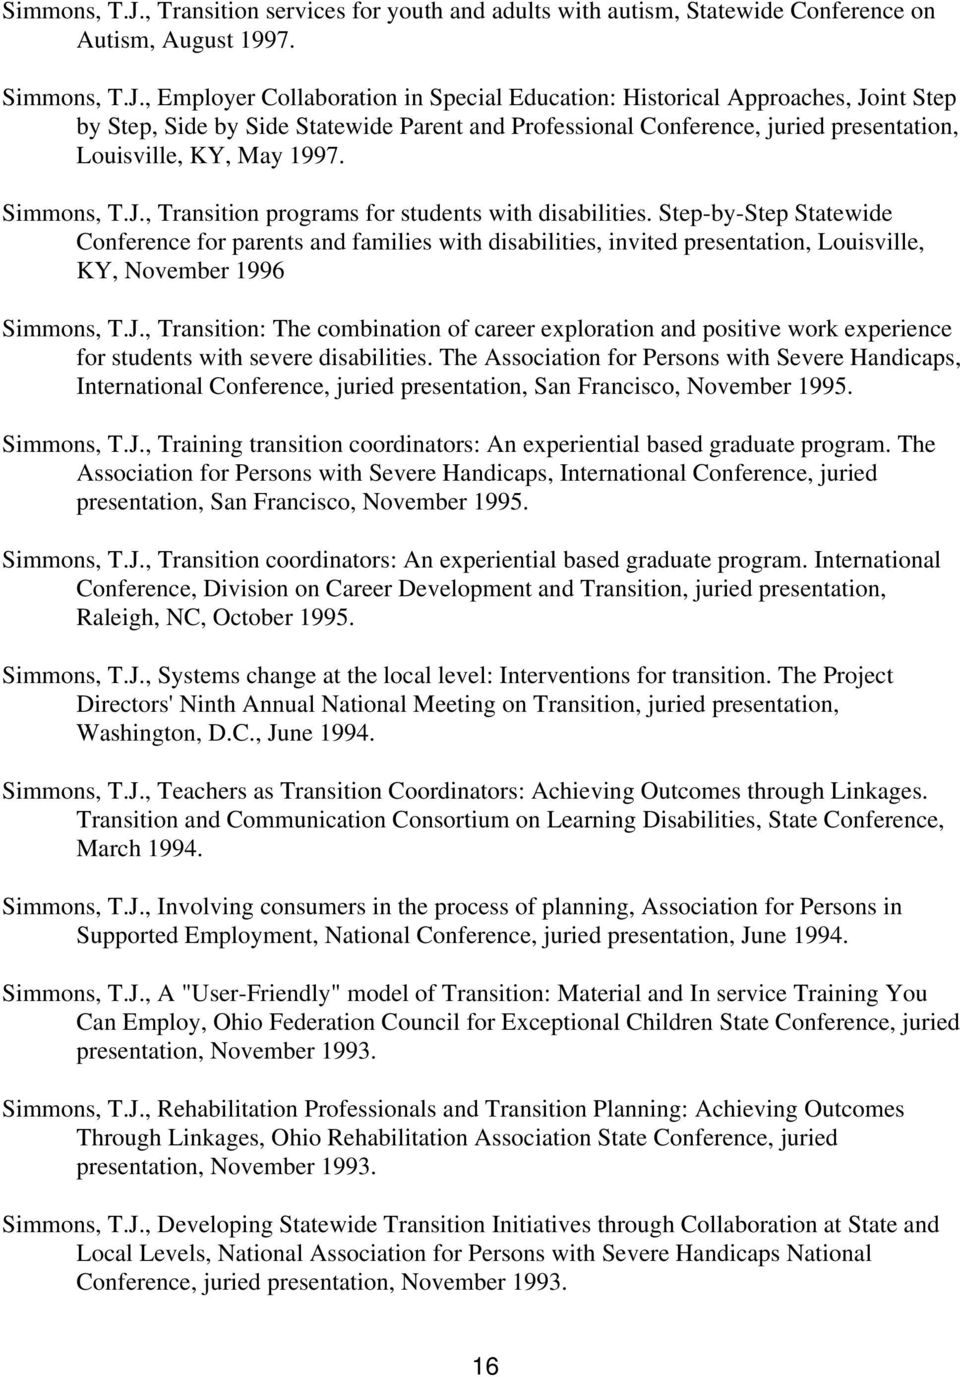 , Employer Collaboration in Special Education: Historical Approaches, Joint Step by Step, Side by Side Statewide Parent and Professional Conference, juried presentation, Louisville, KY, May 1997.